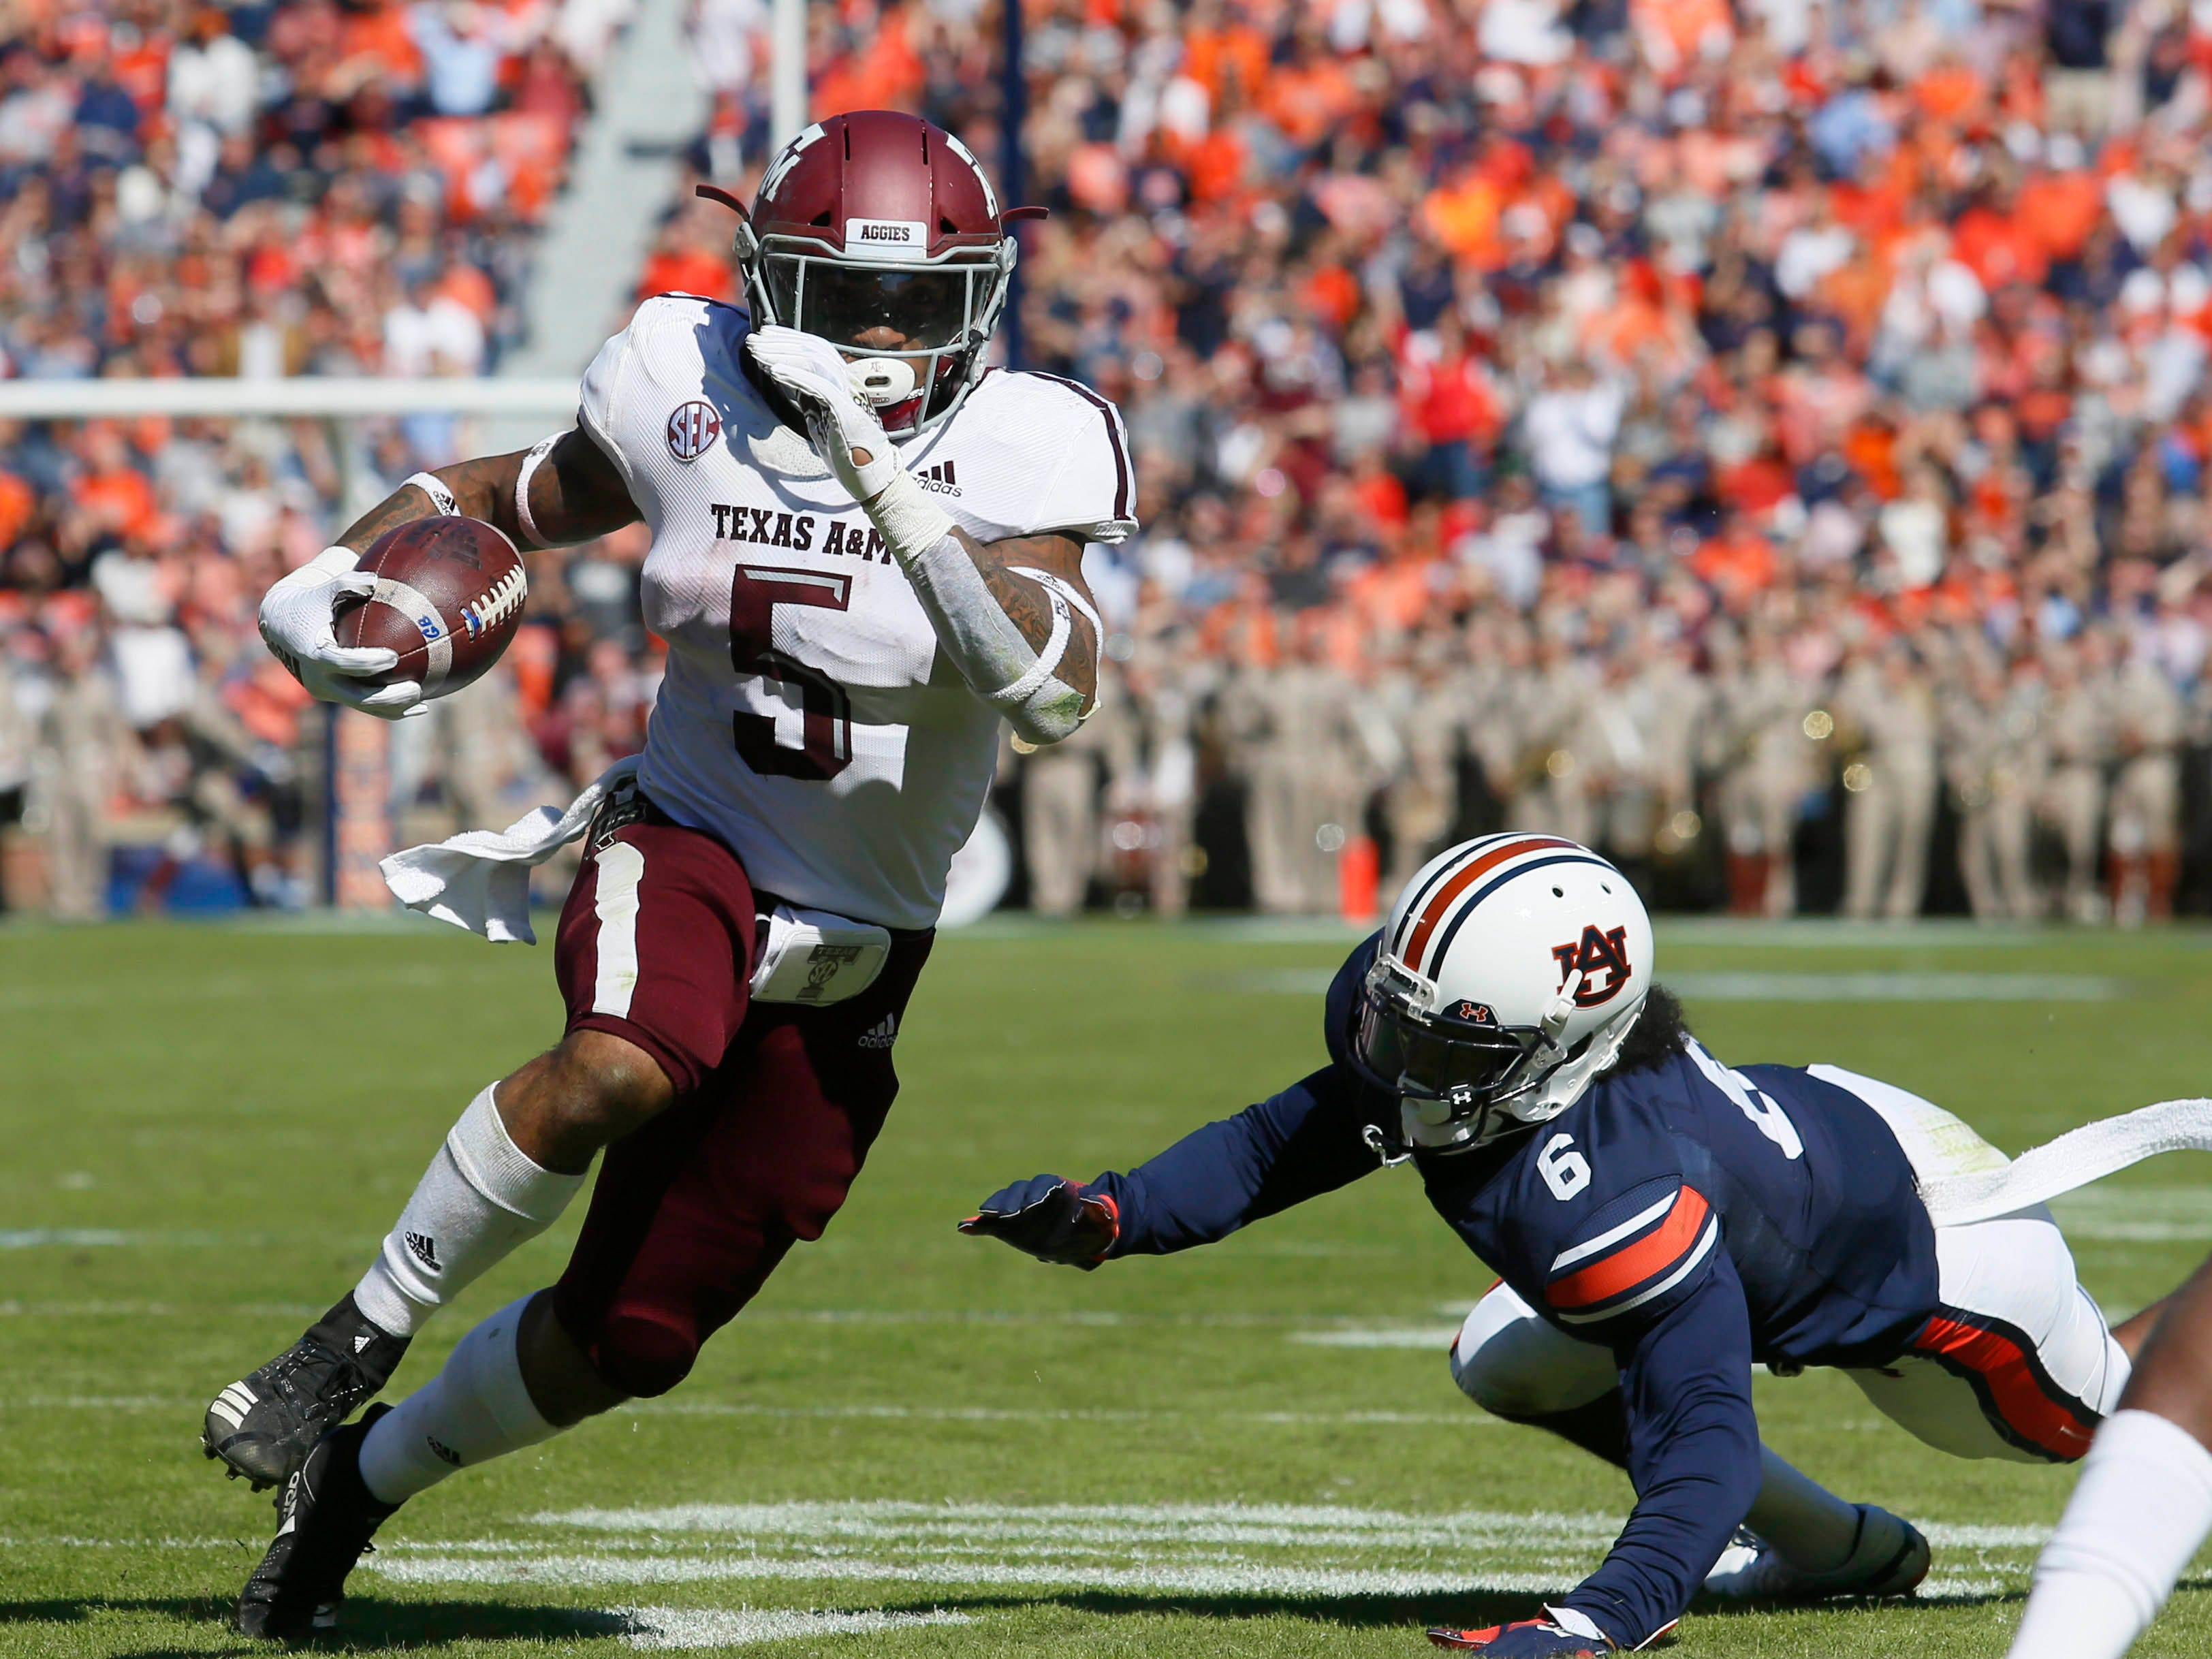 Texas A&M Aggies running back Trayveon Williams (5) scores a first-half touchdown at Auburn's Jordan-Hare Stadium.